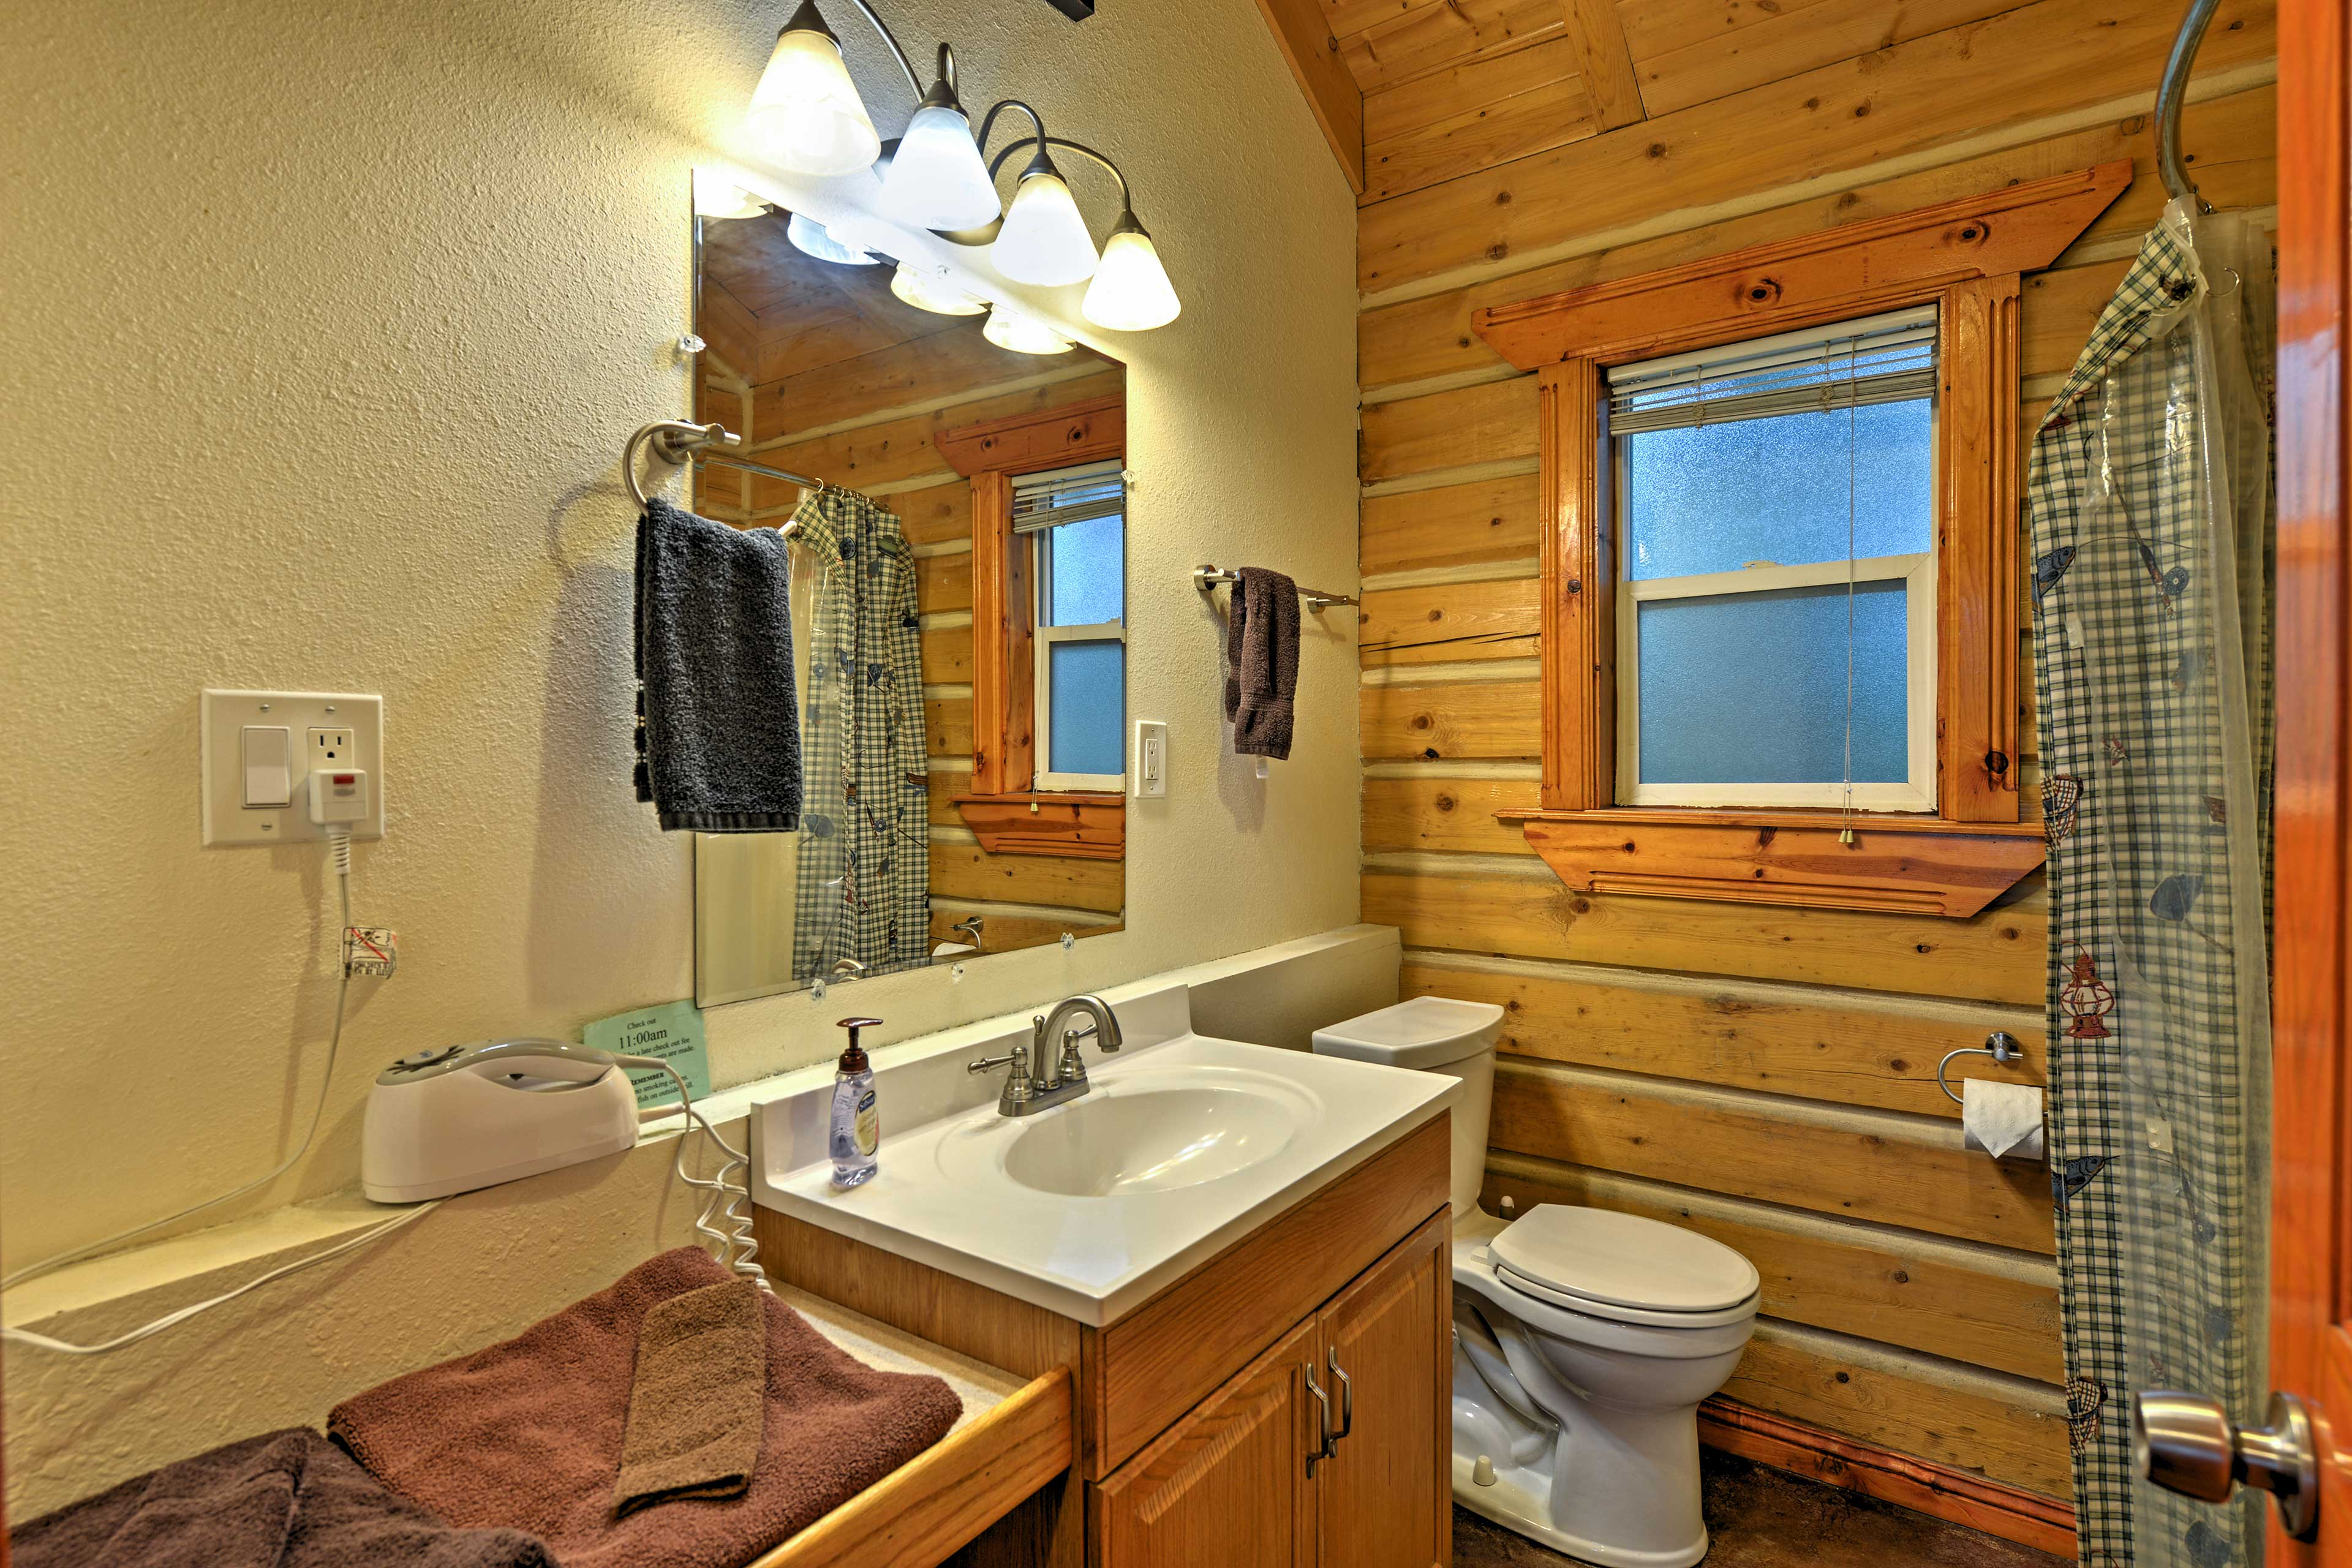 Clean off in the bathroom, which features a single vanity and shower/tub combo.